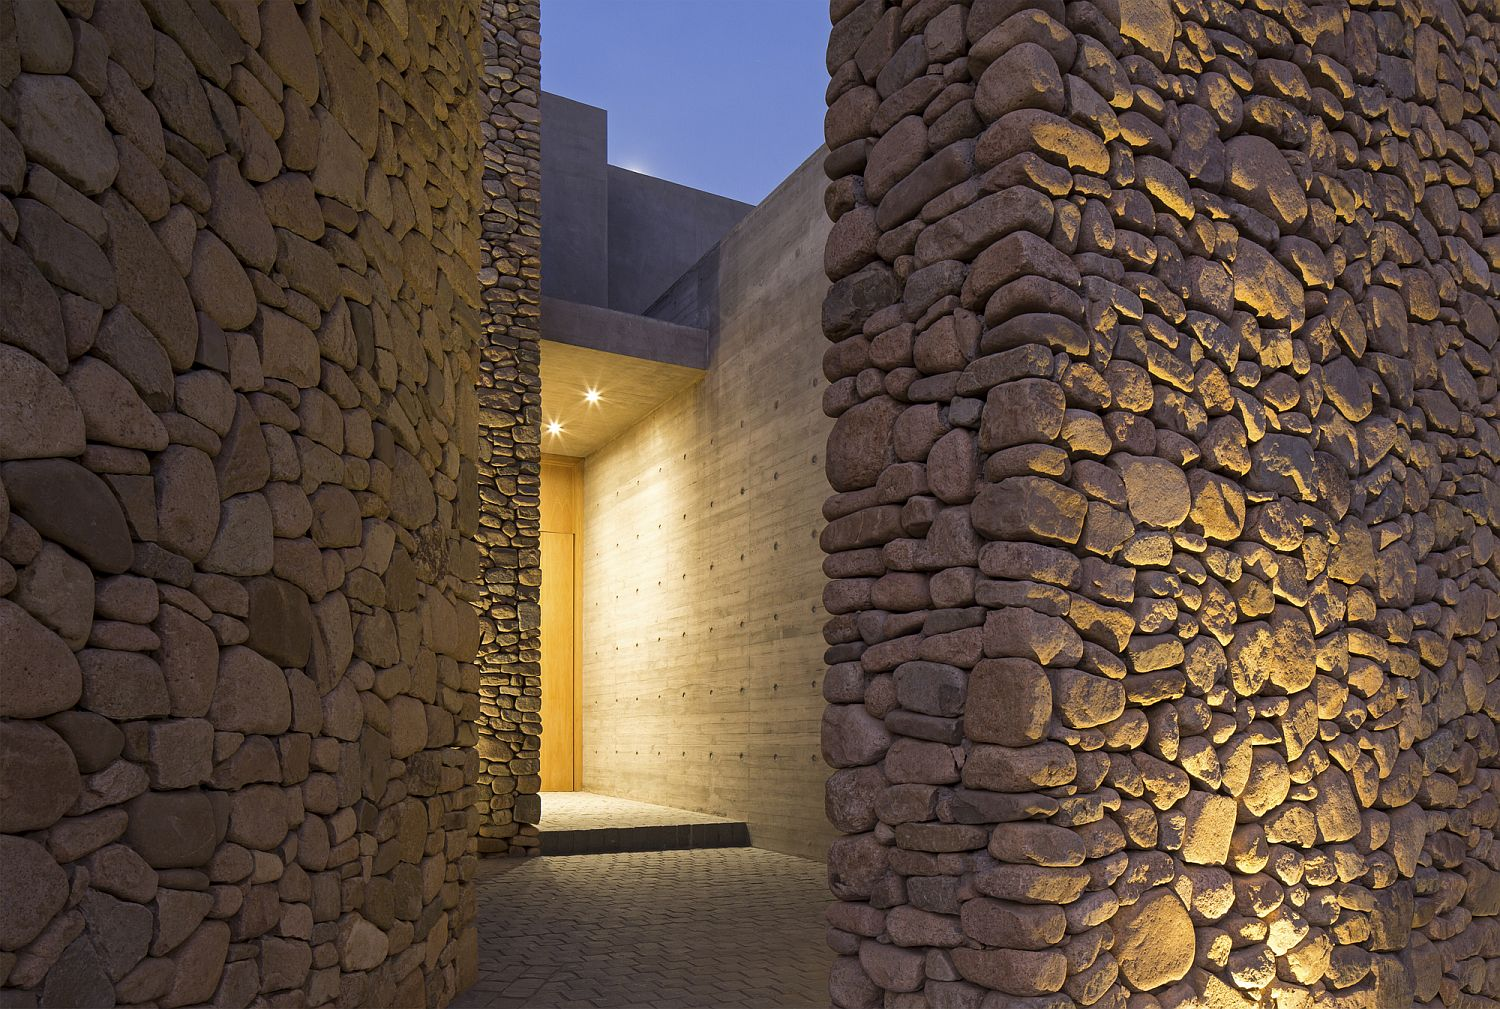 Sheltered entryway of the house in Chile made of stone